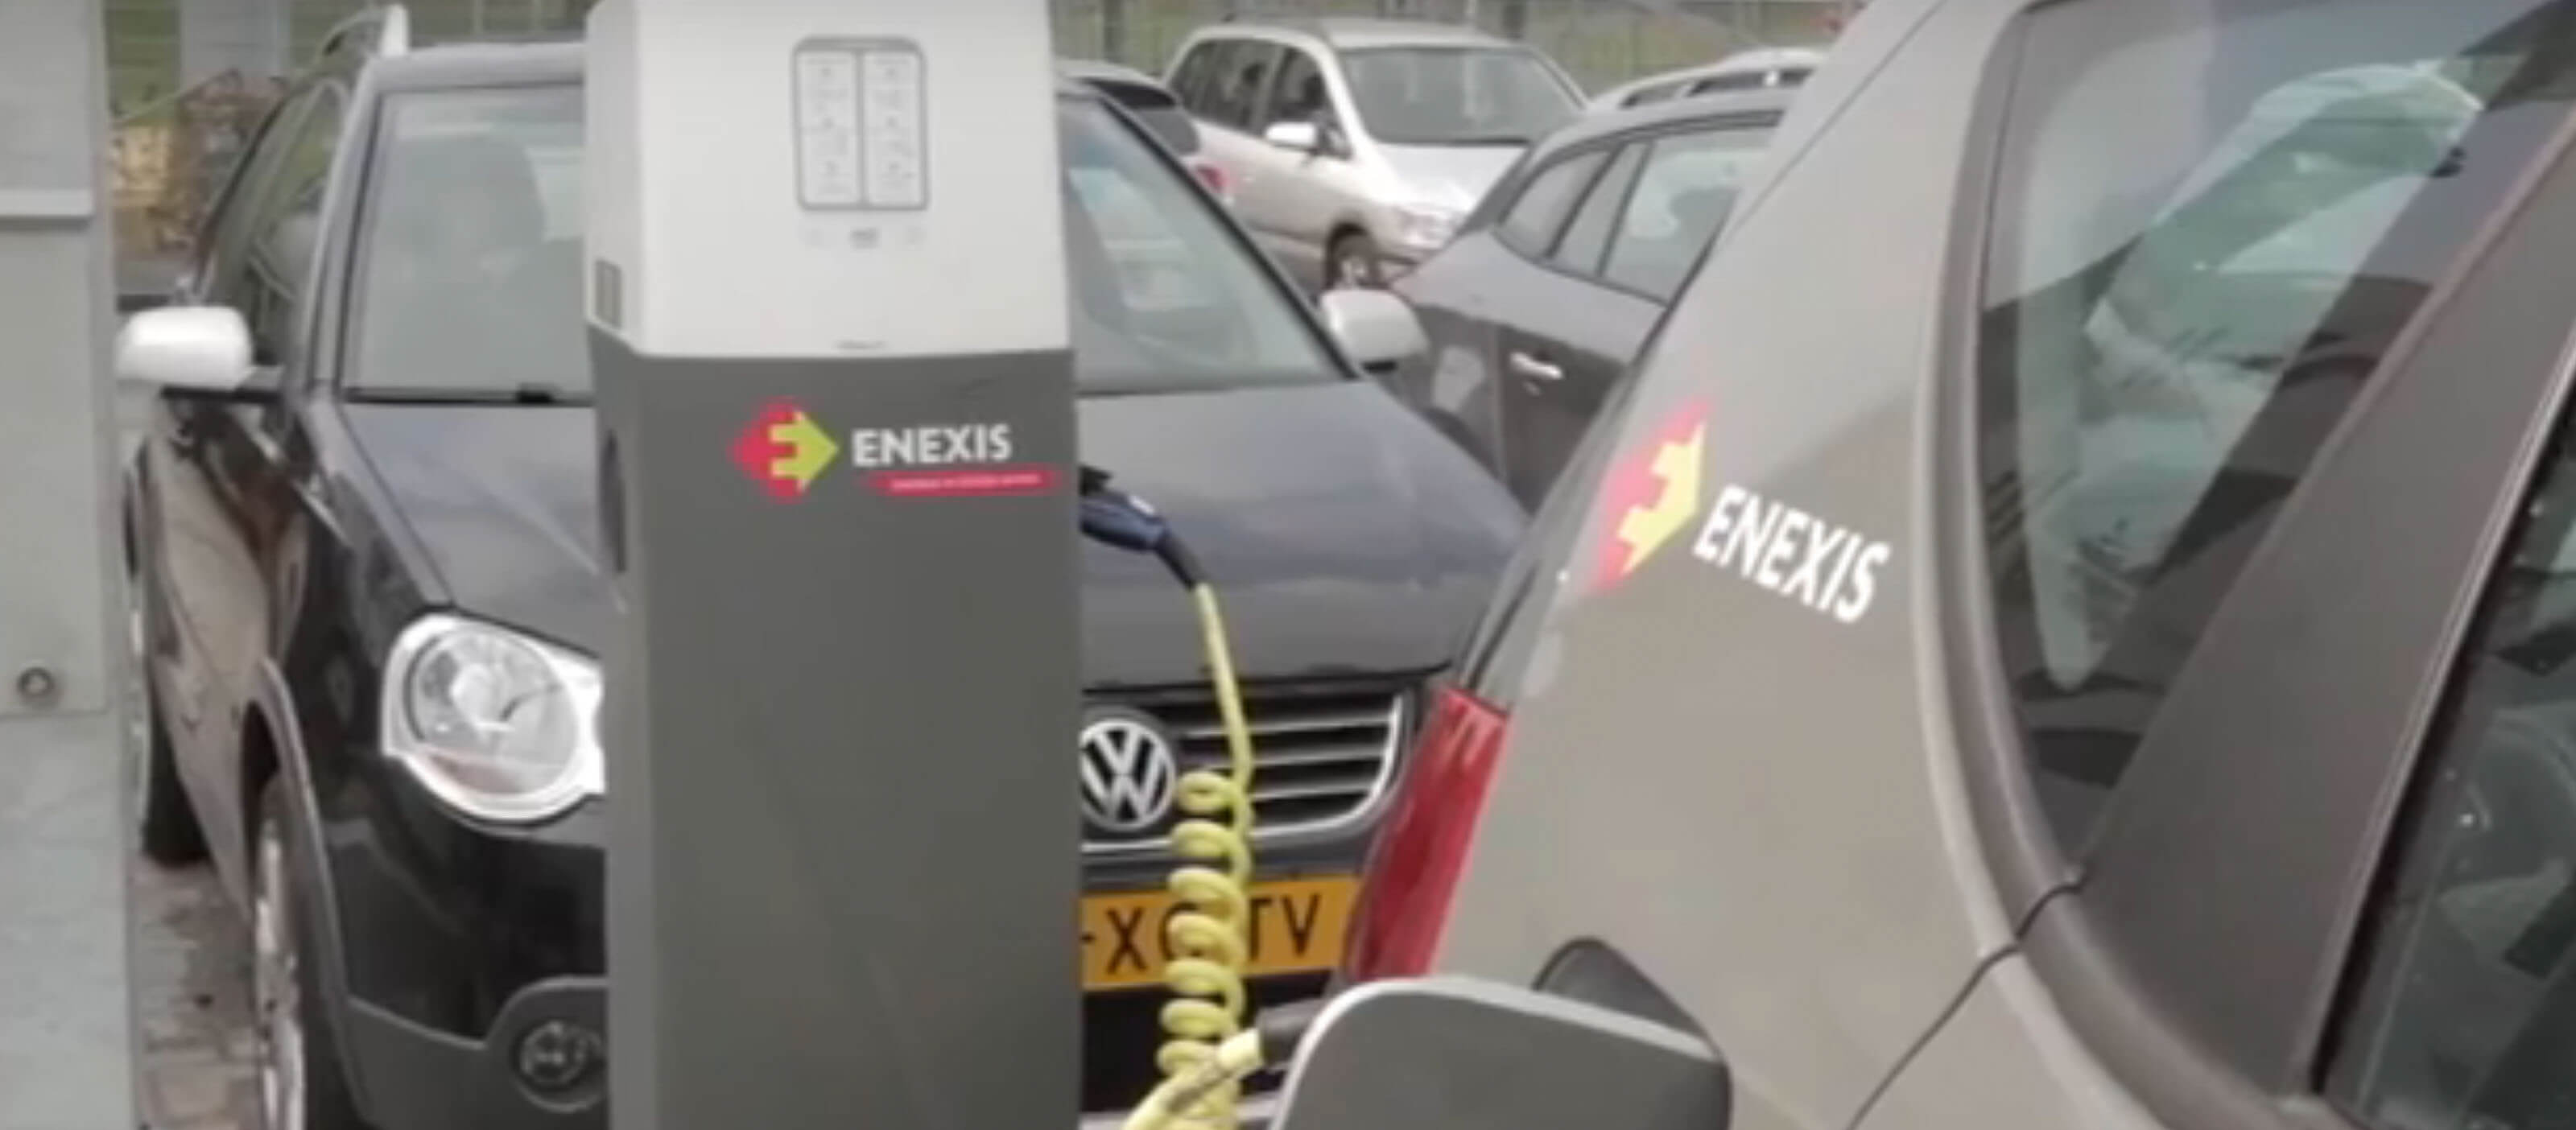 Enexis on partnering with GE Power | GIS